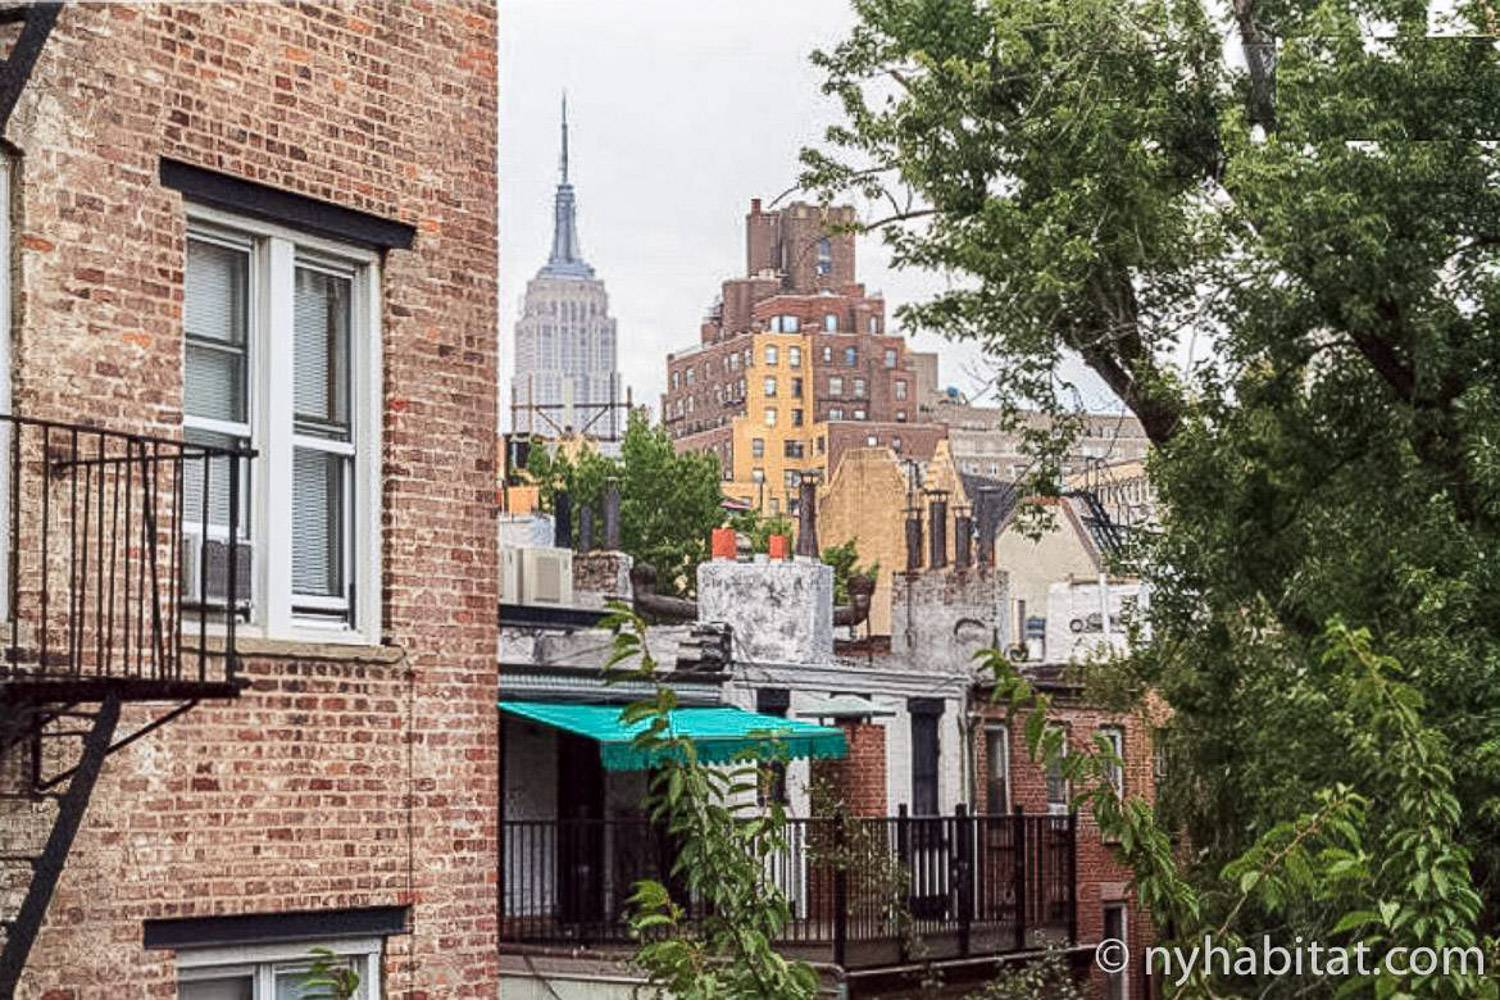 Image of tree and brick buildings and rooftops with Empire State Building in background